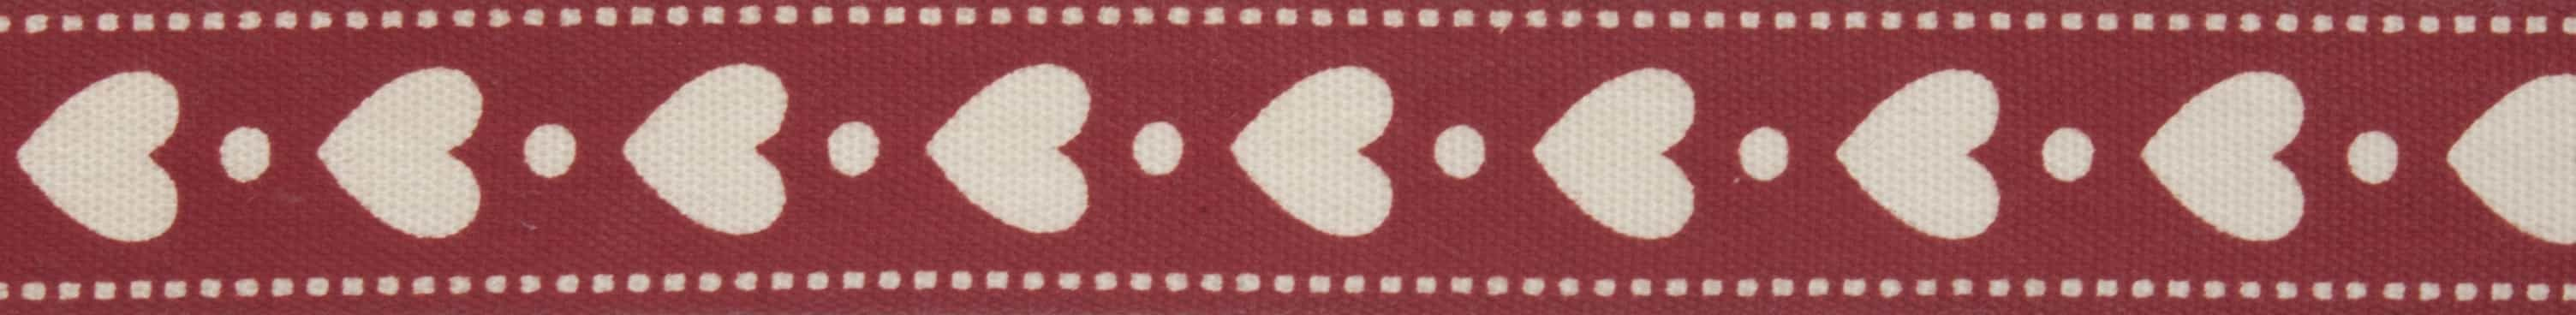 15mm Red Hearts Cotton Ribbon 5m Reel